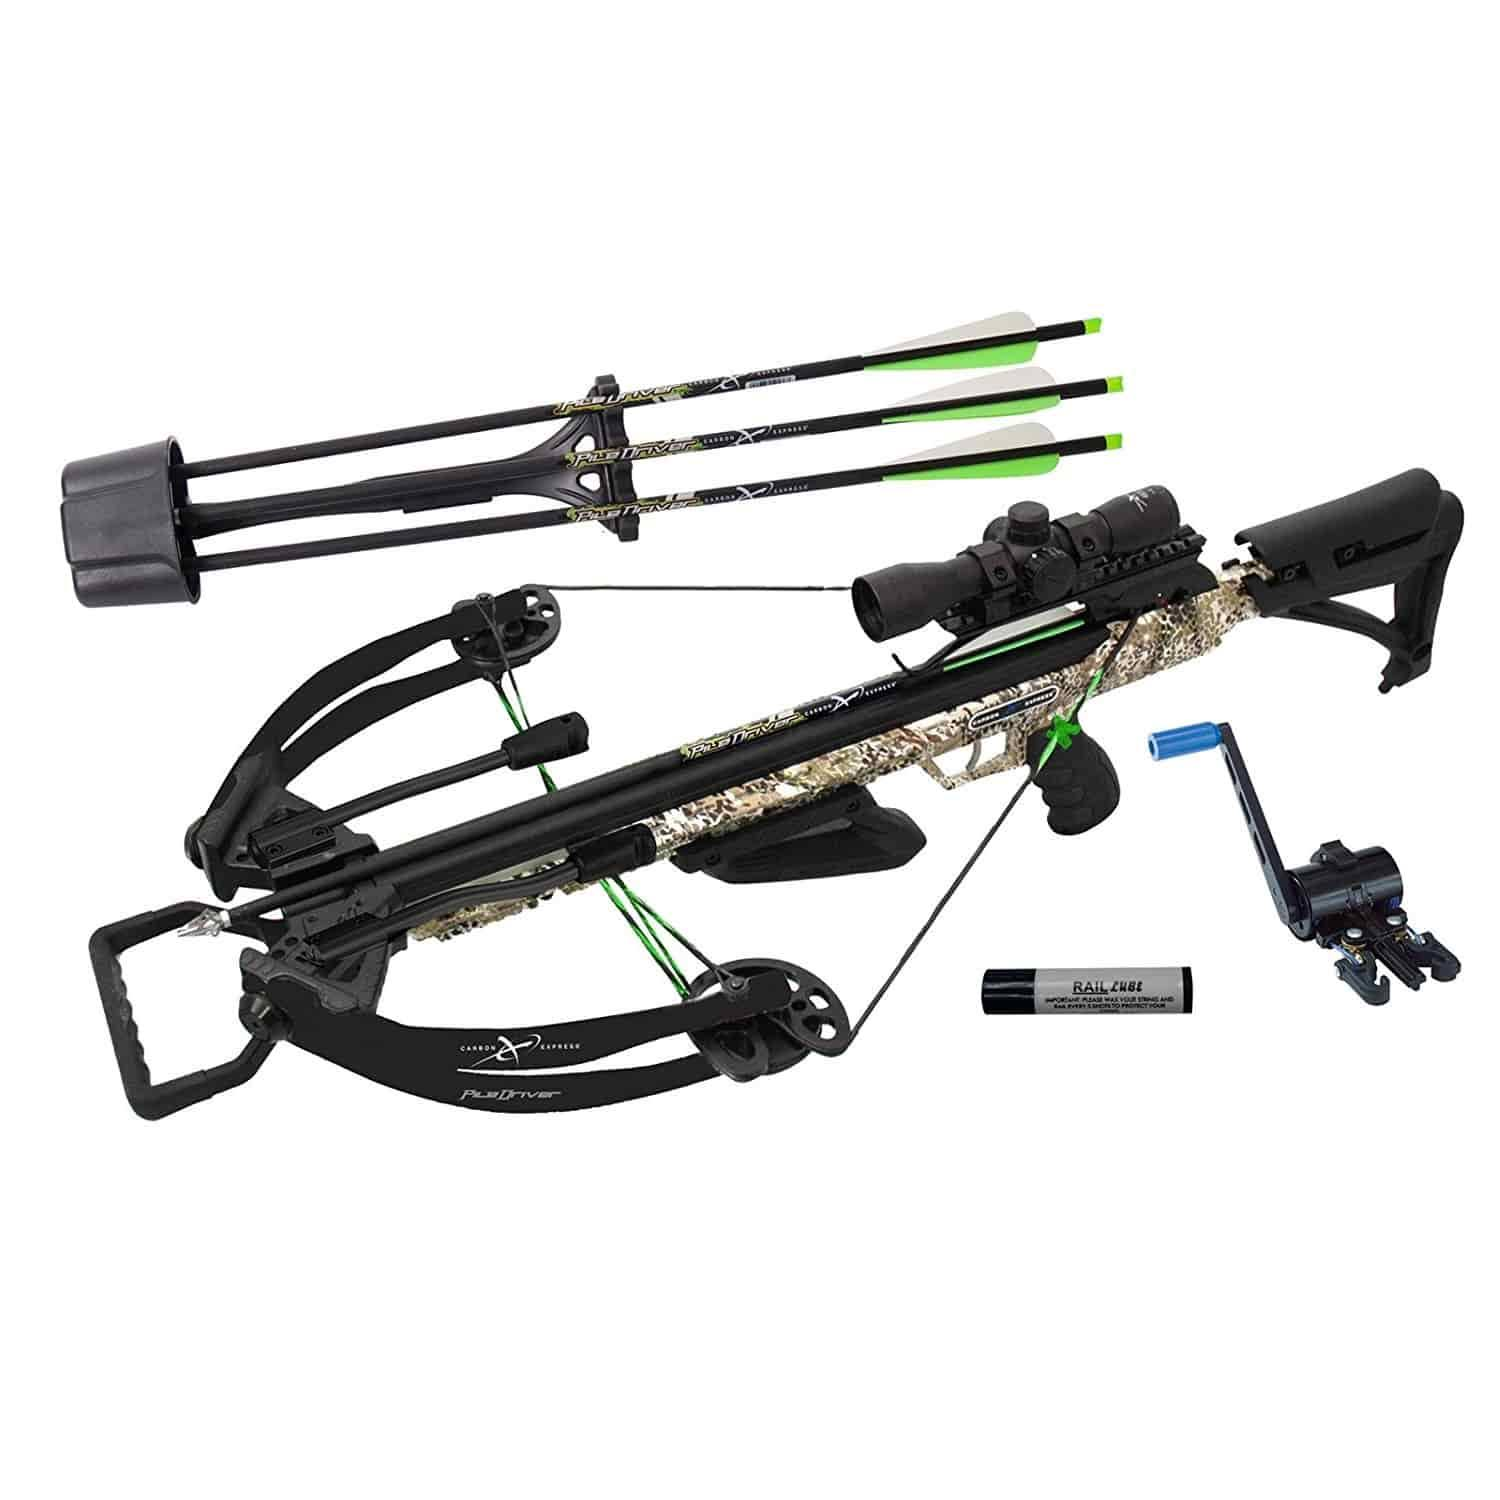 Carbon Express Xforce Piledriver 390 Crossbow - With Crank